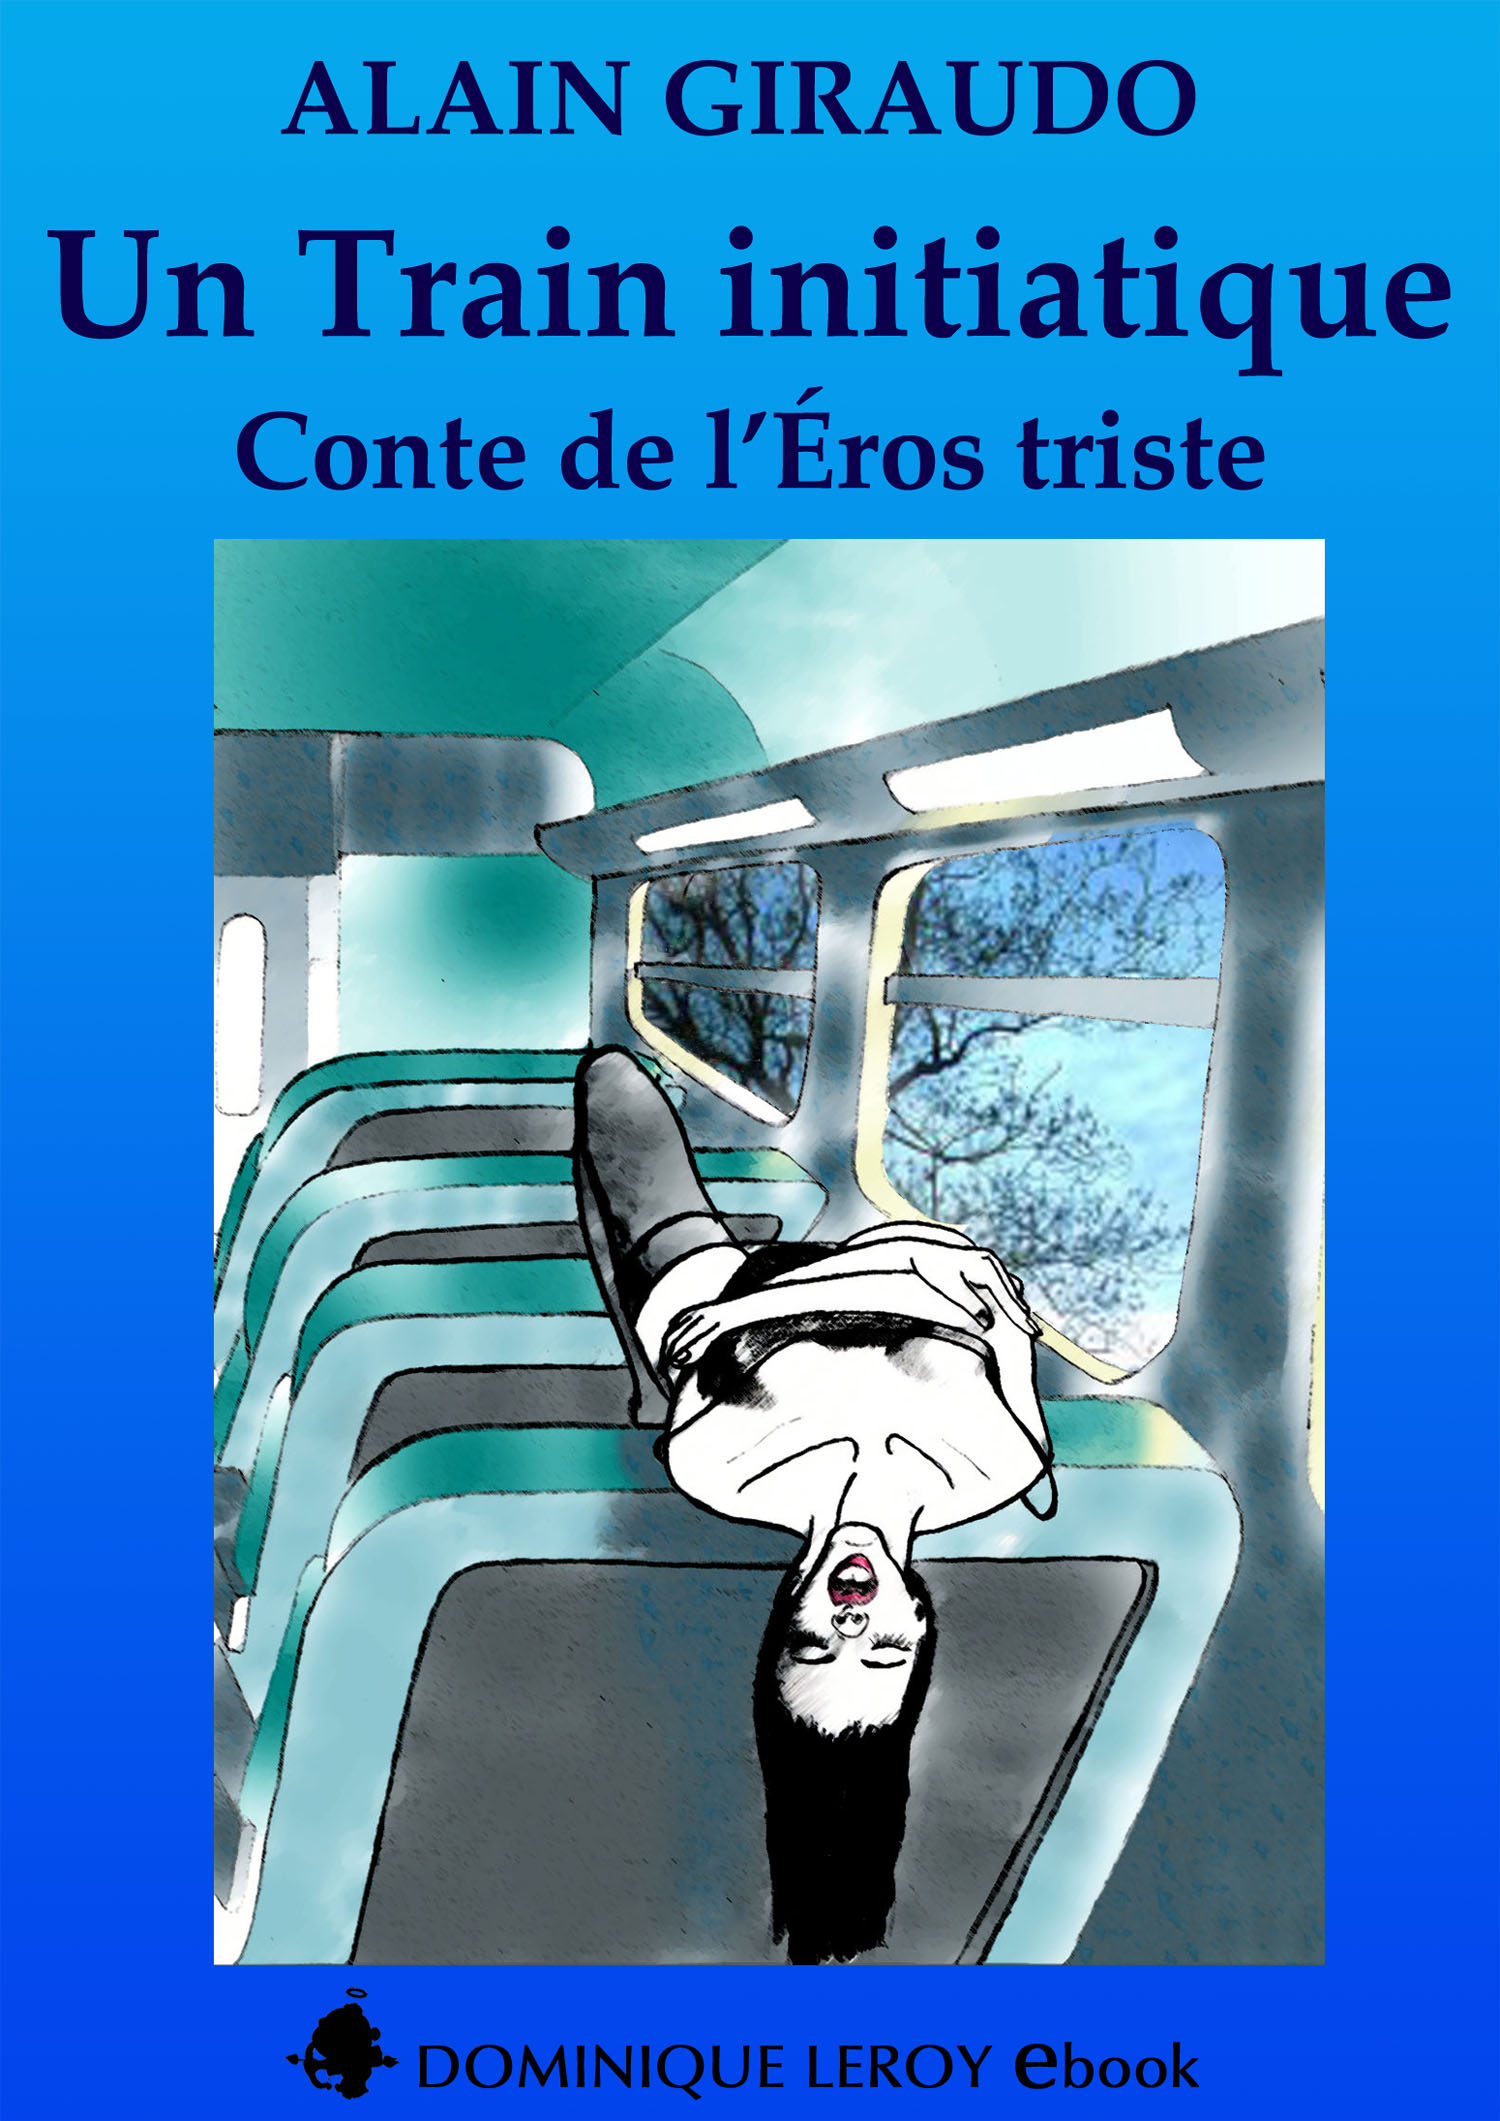 Un train initiatique